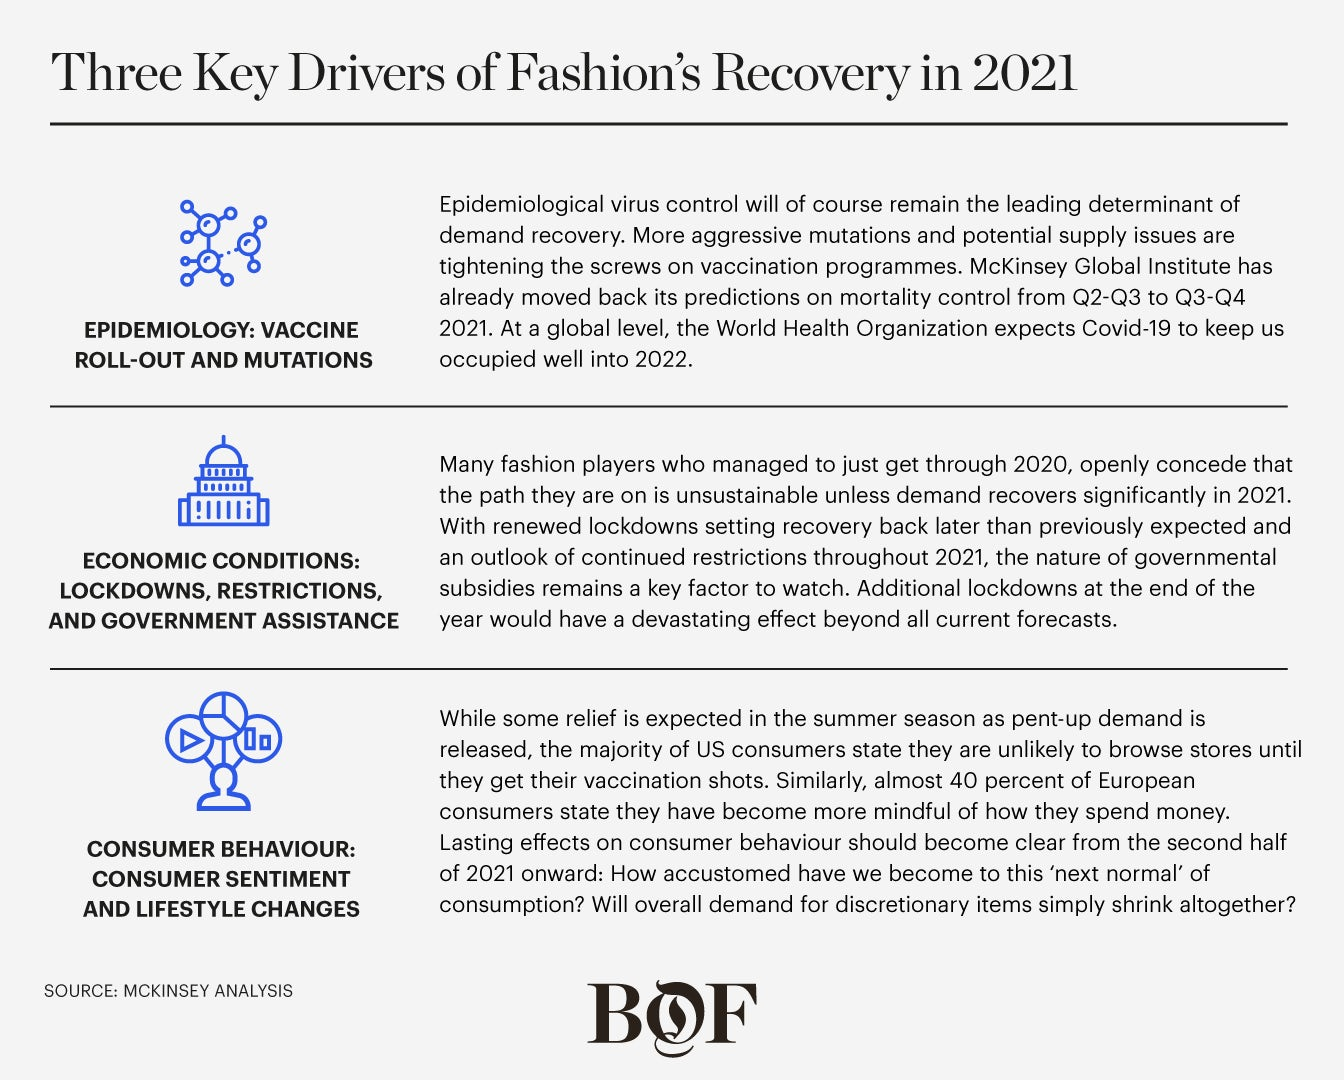 Three Key Drivers of Fashion's Recovery in 2021. McKinsey & Company.